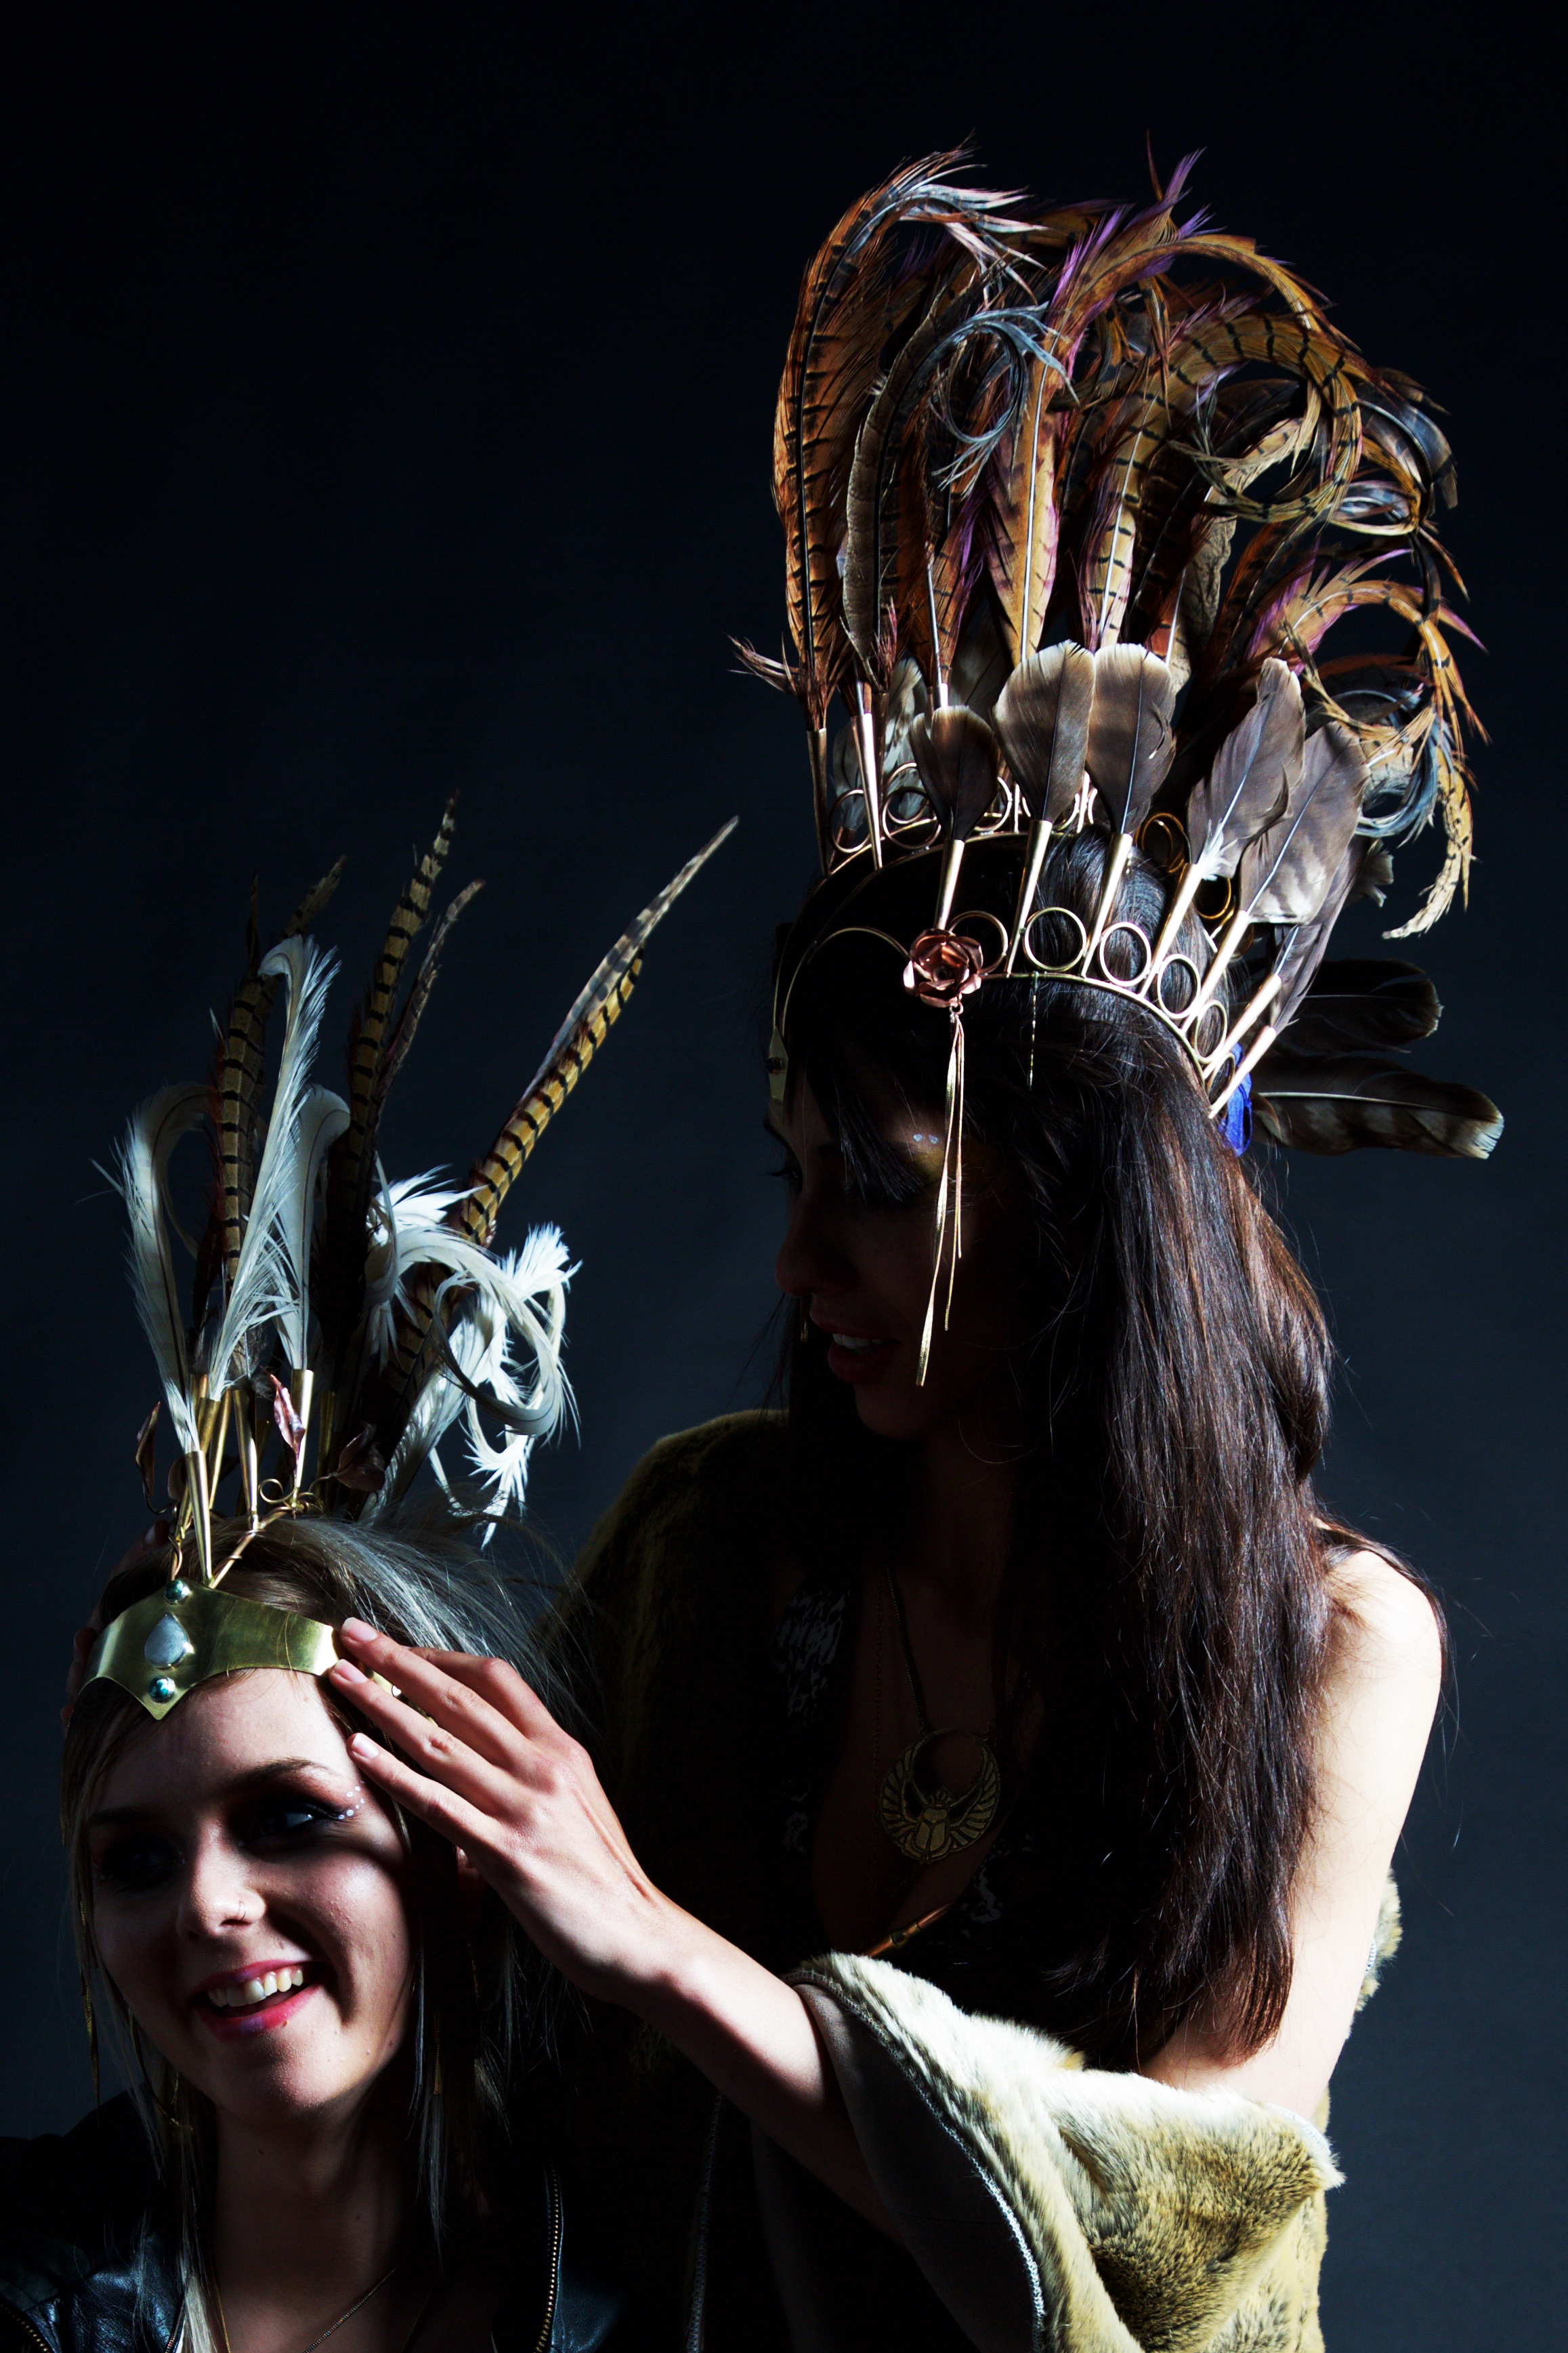 feather headdresses by organik mechanik, organik mechanik